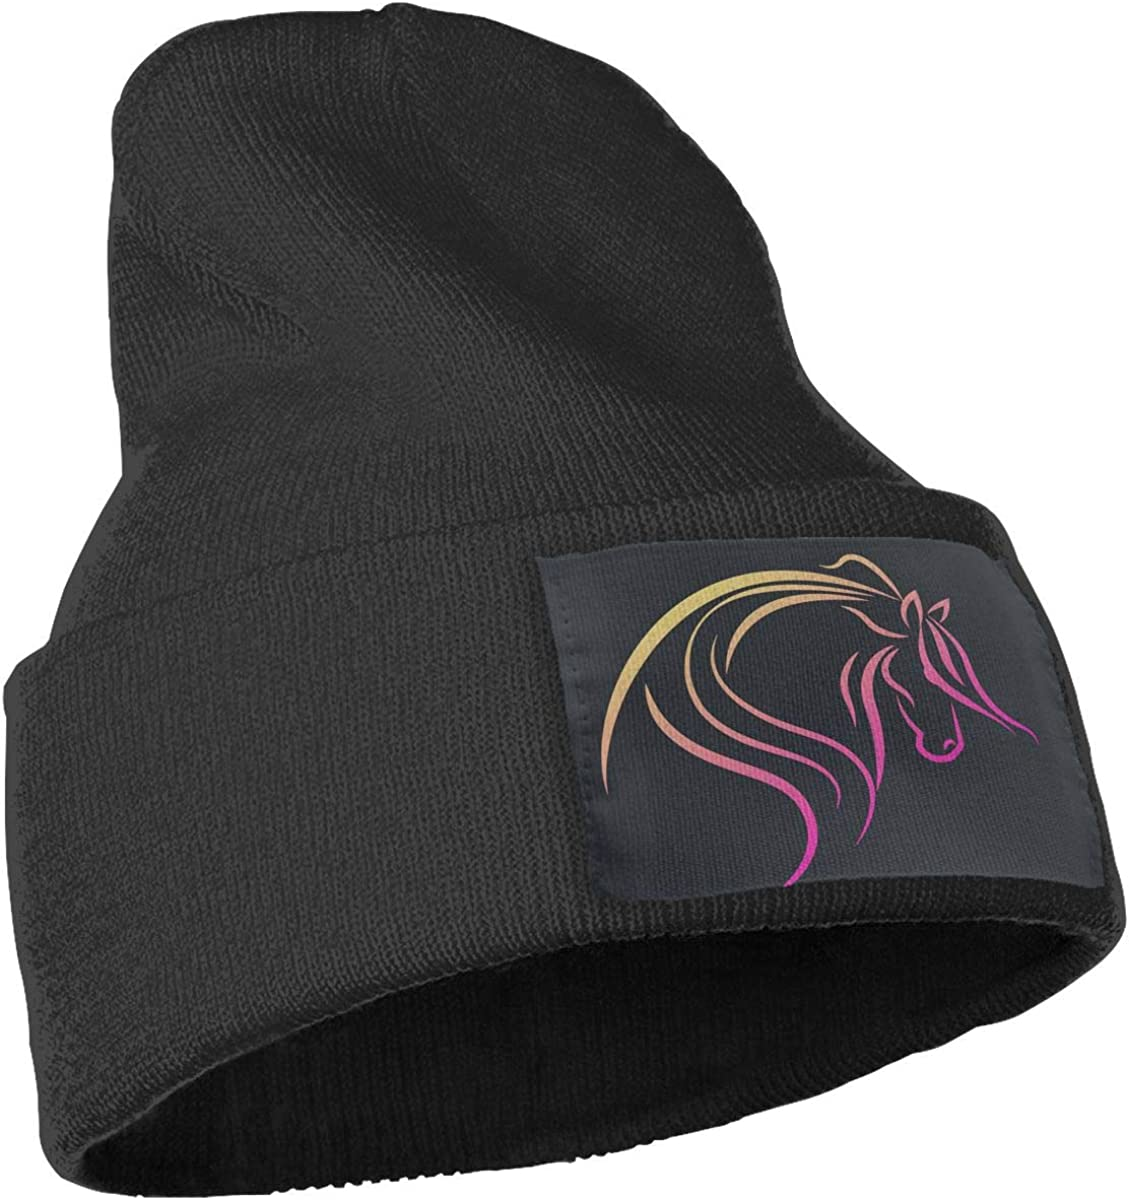 MaoXCatt Pink Horse Men Women Winter Warm Skull Cap